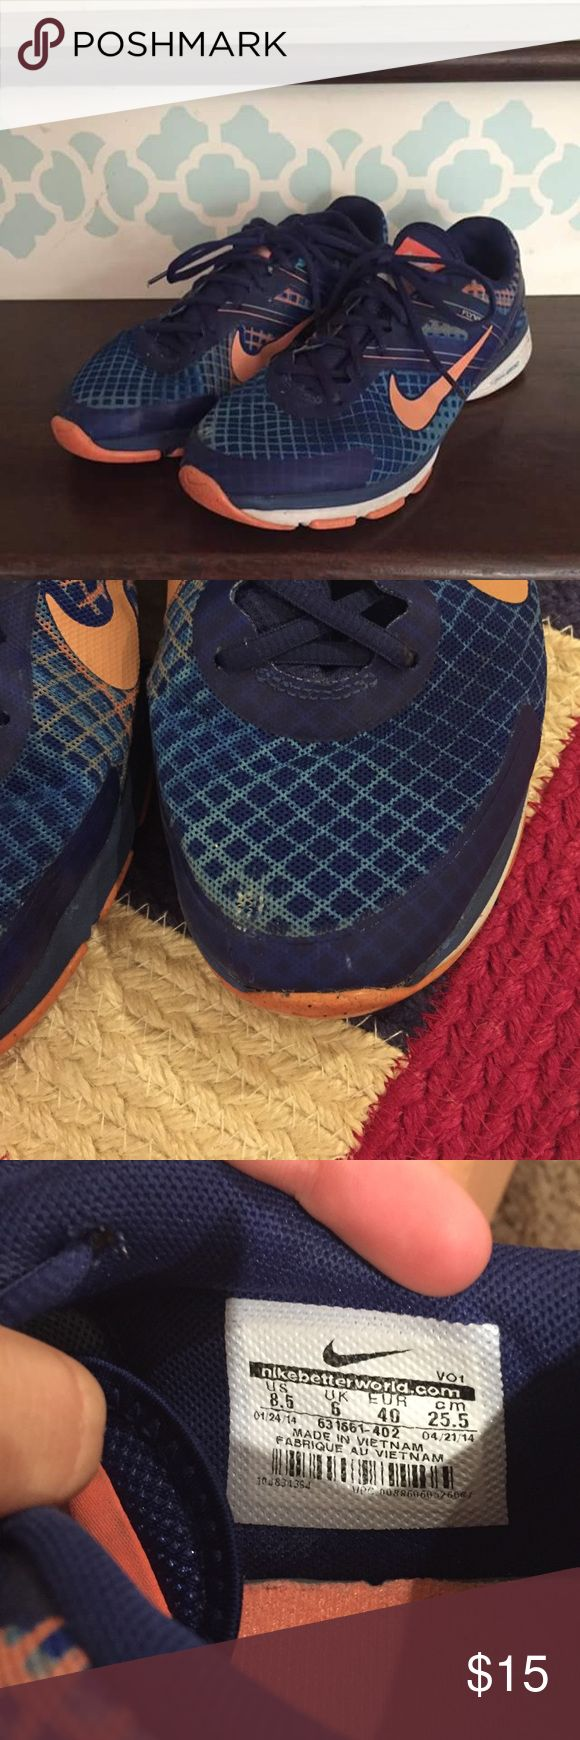 Women's Nike Dual Fusion Flywire size 8.5 These are blue and orange women's Nike shoes. They're in good condition with one minor flaw. There is a tiny part on the left shoe where the material is thin. Other than that they're perfect! Nike Shoes Athletic Shoes